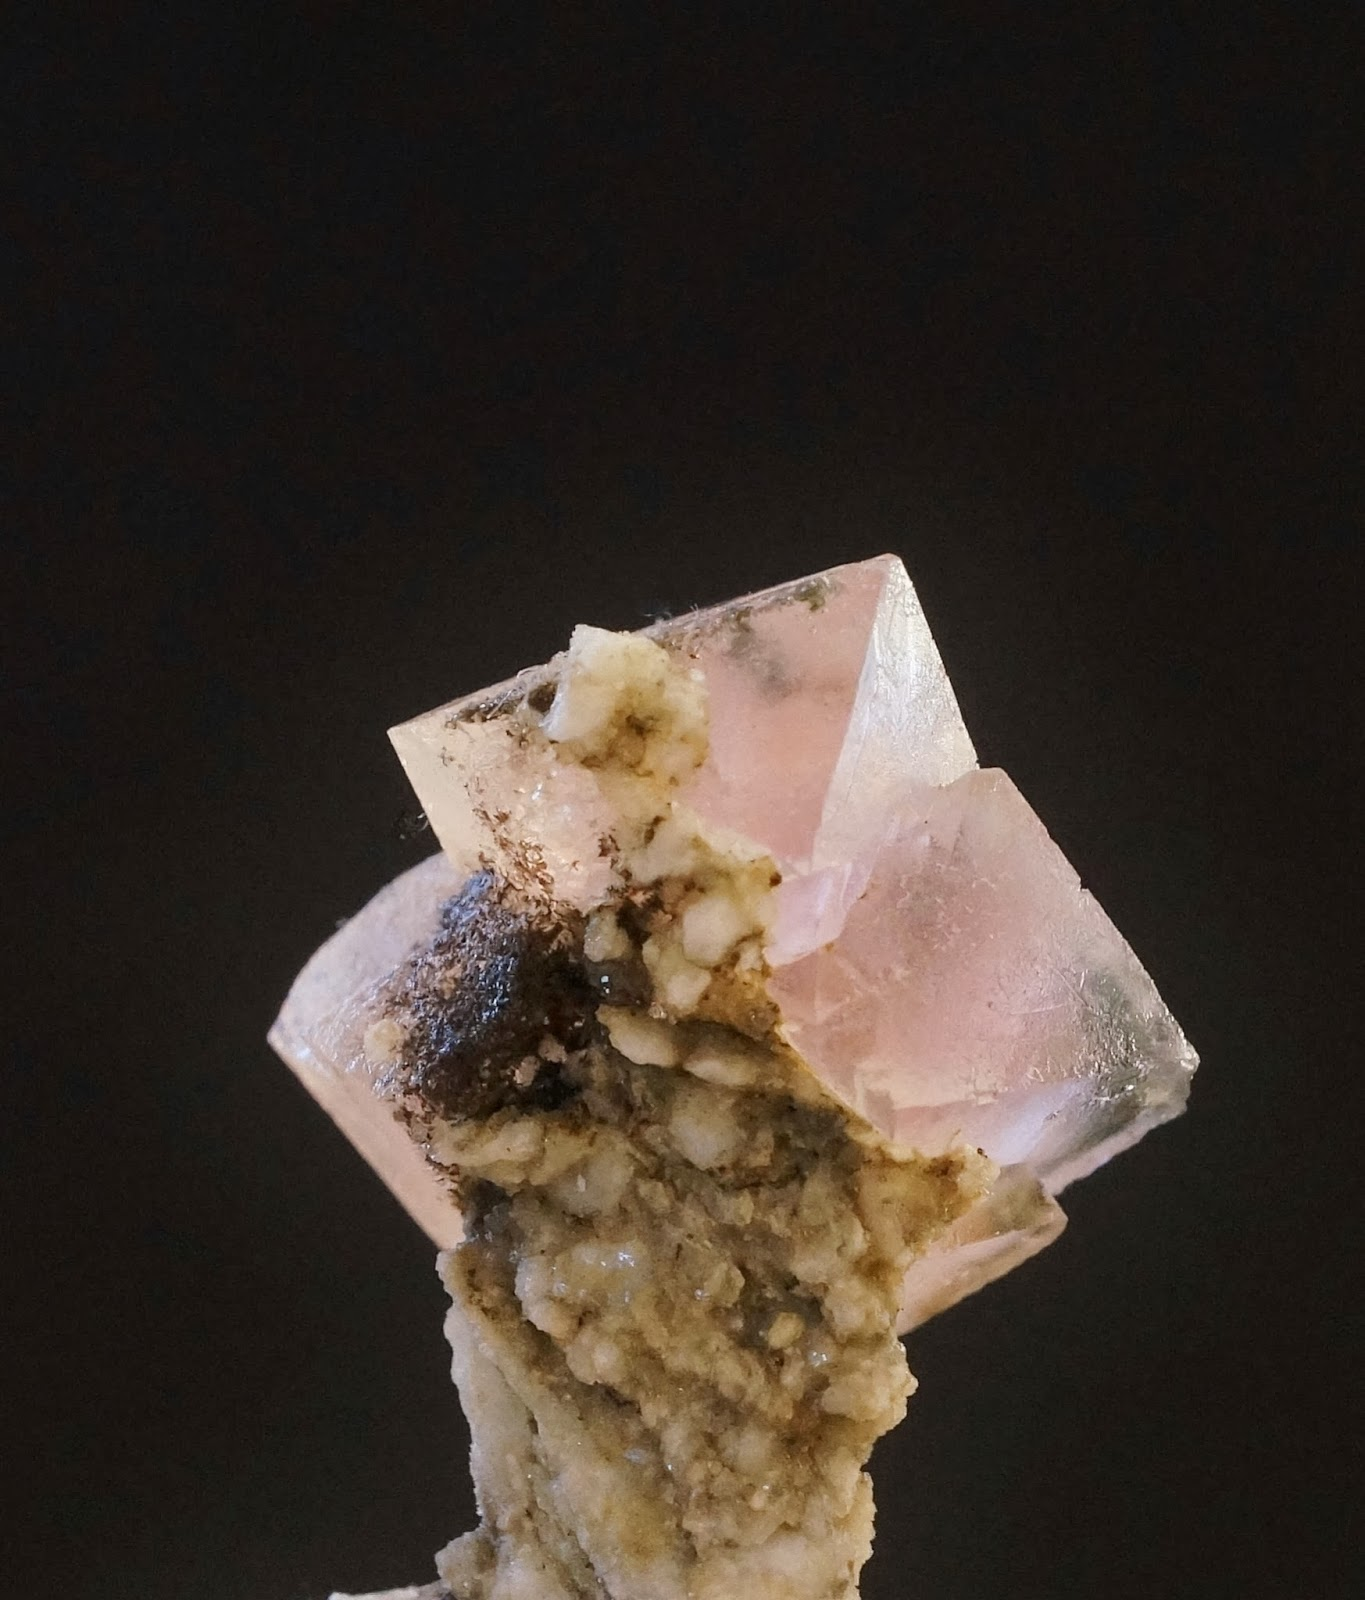 pink fluorite from Mont-Blanc